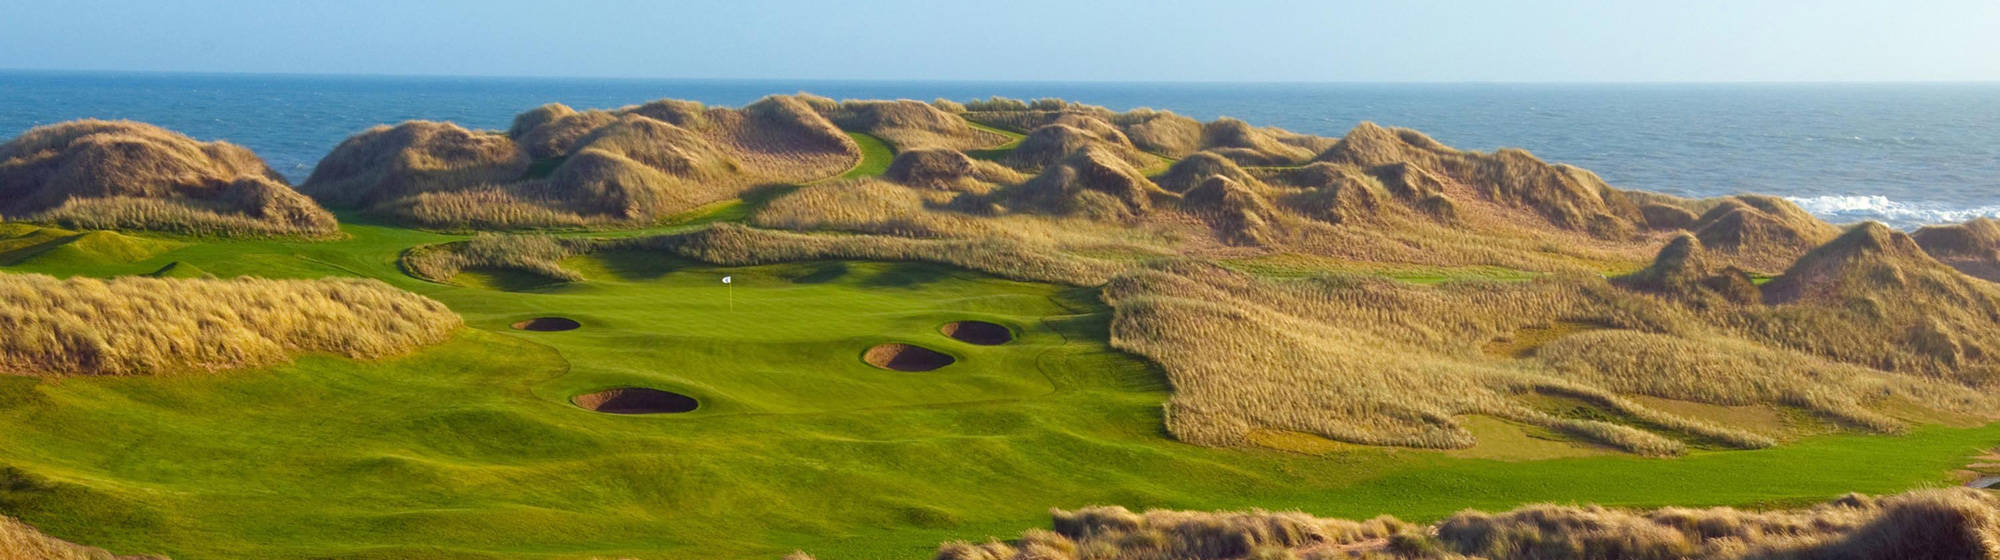 Trump International Golf Links, Scotland, 13th